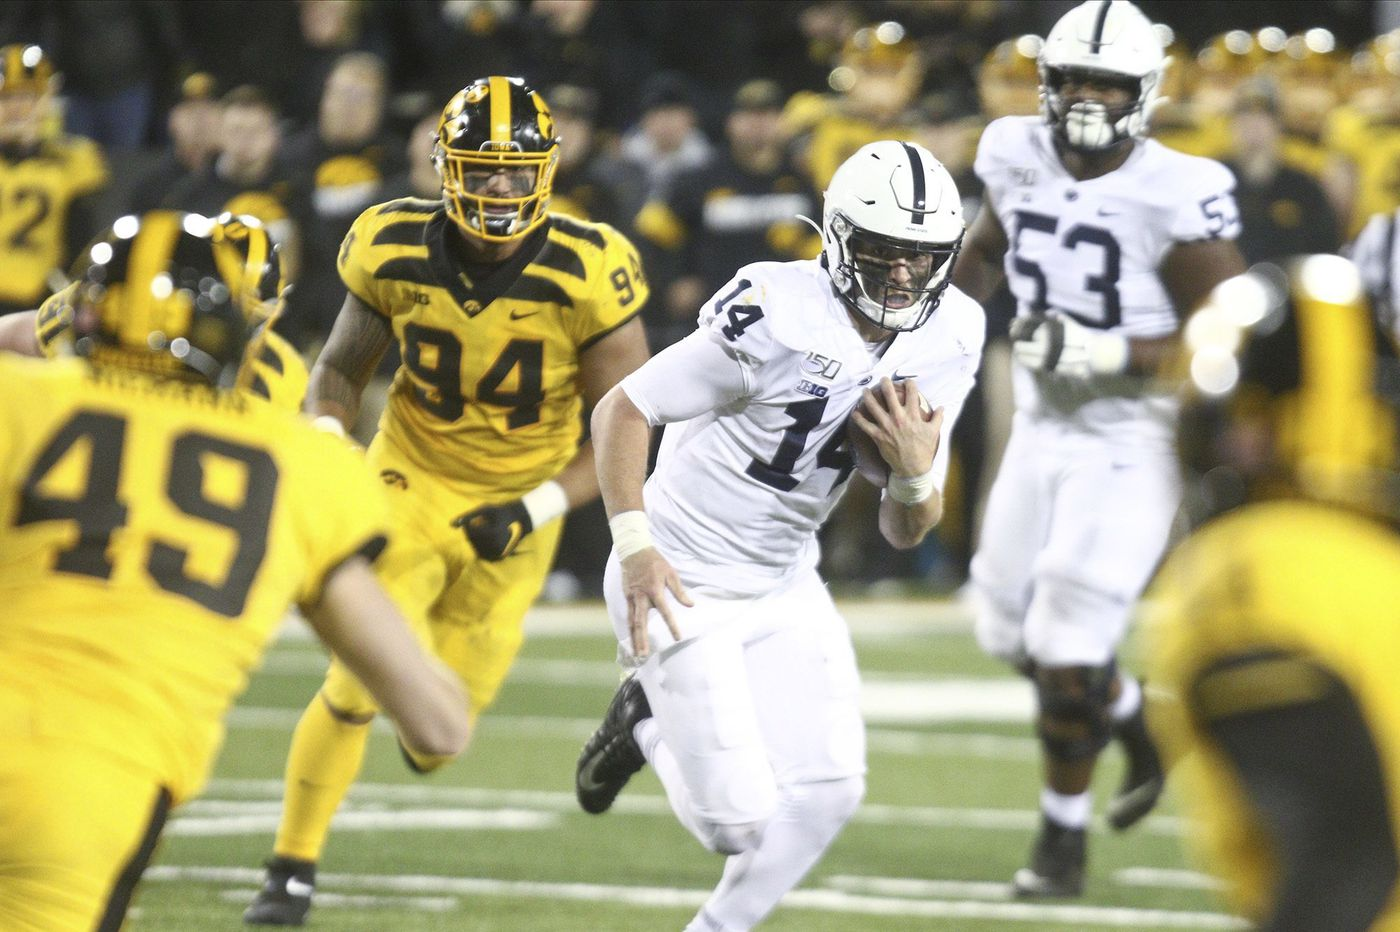 Quarterback Sean Clifford's running is an added element for Penn State offense